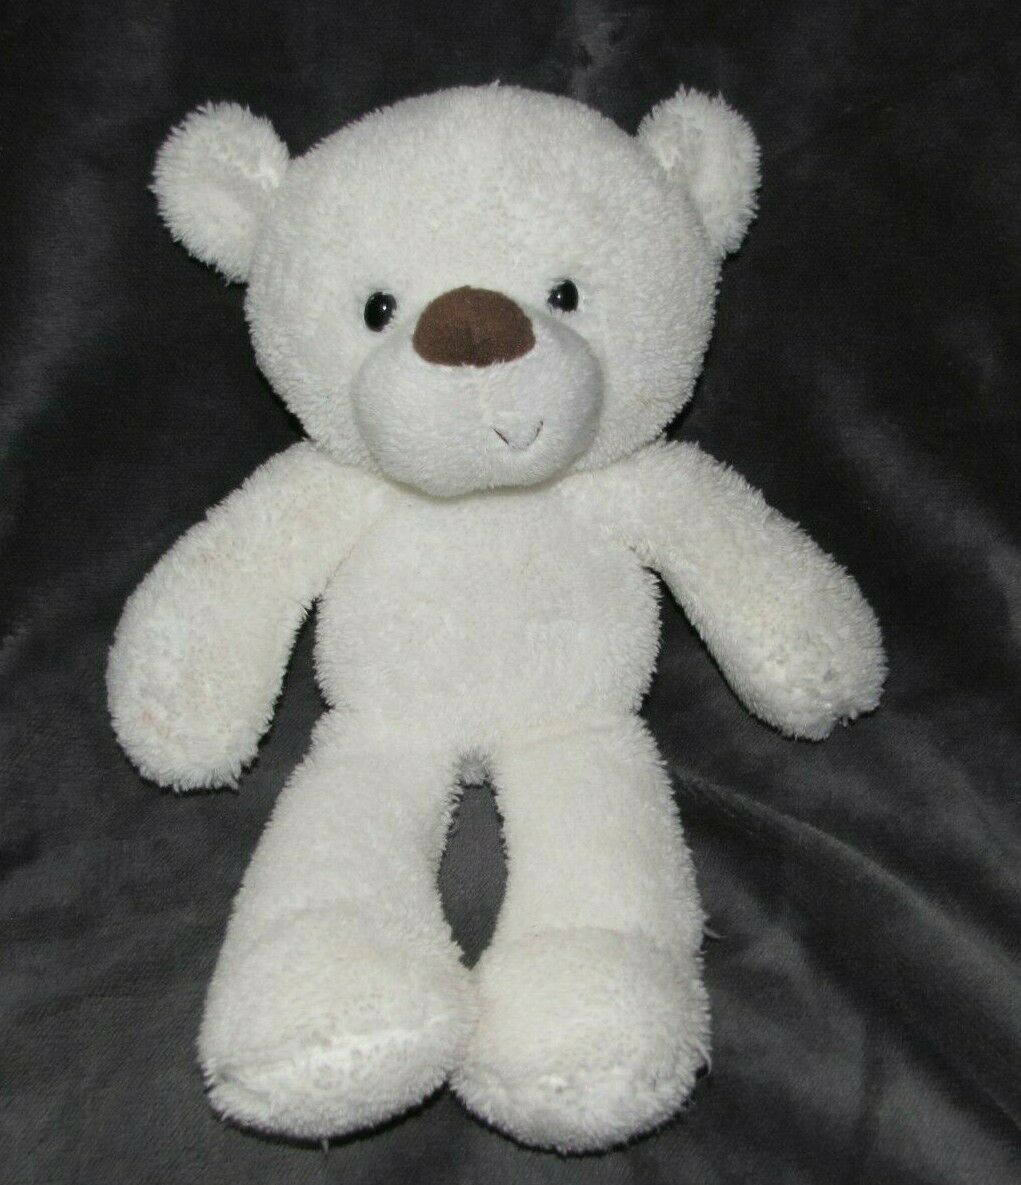 G5.0 G 5.0 Gund White White White Stuffed Plush Take Along Teddy Polar Bear 4037905 15  9  83e